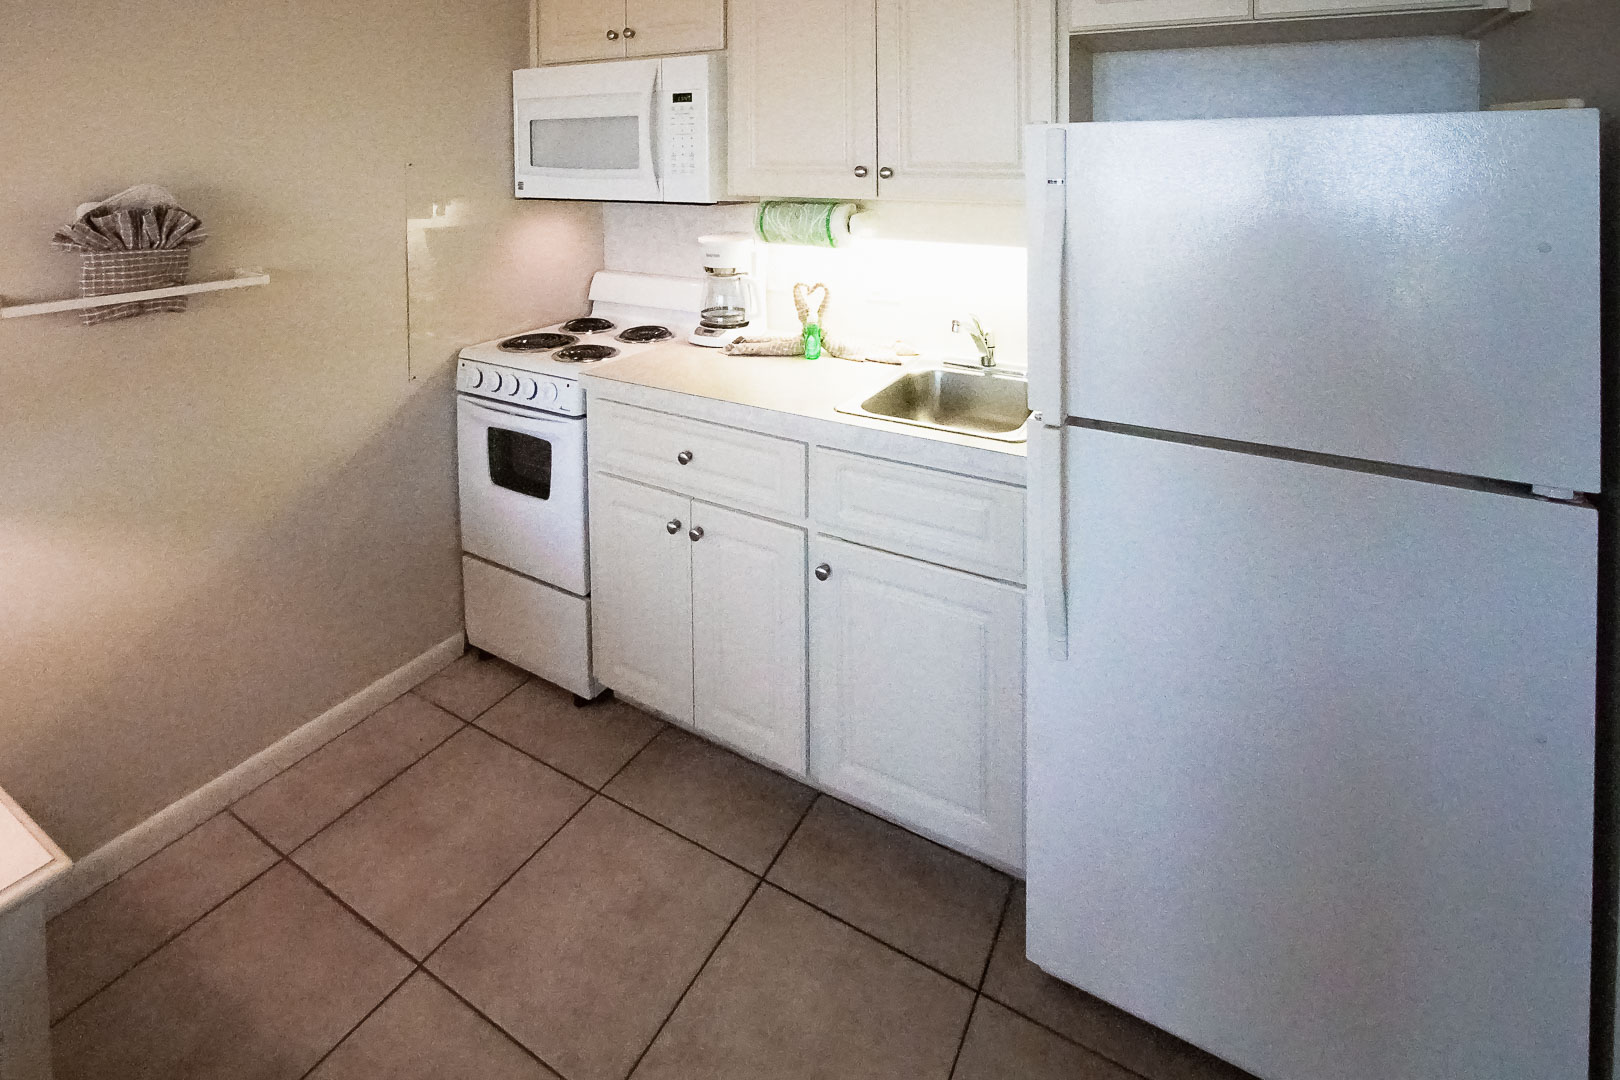 A small kitchen area at VRI's Bonita Resort and Club in Florida.